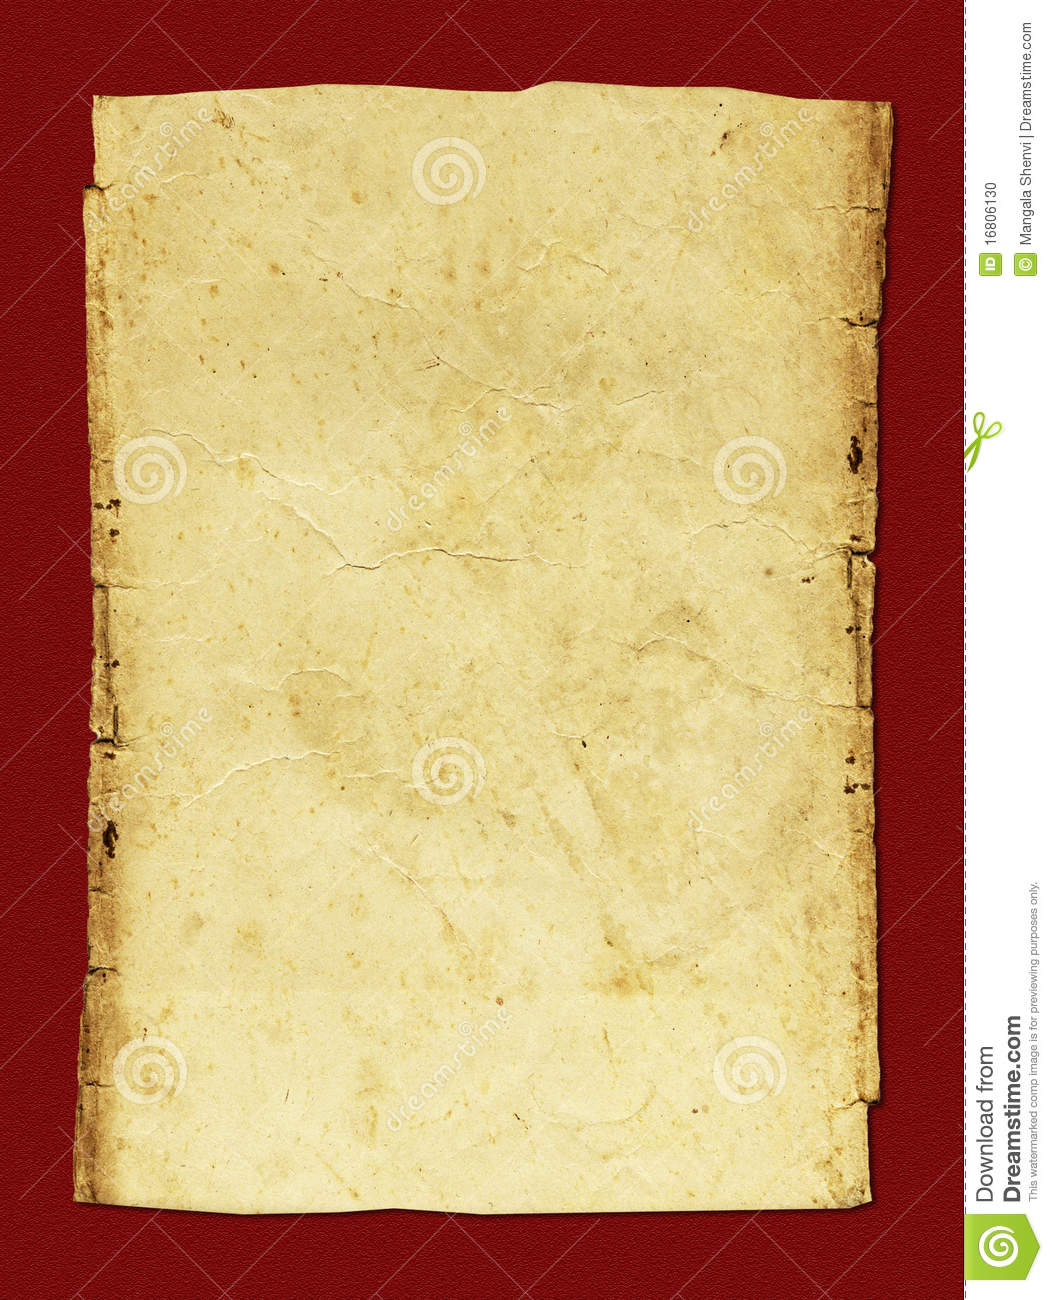 Handmade Paper Background/wallpaper Stock Photo - Image of paper ...